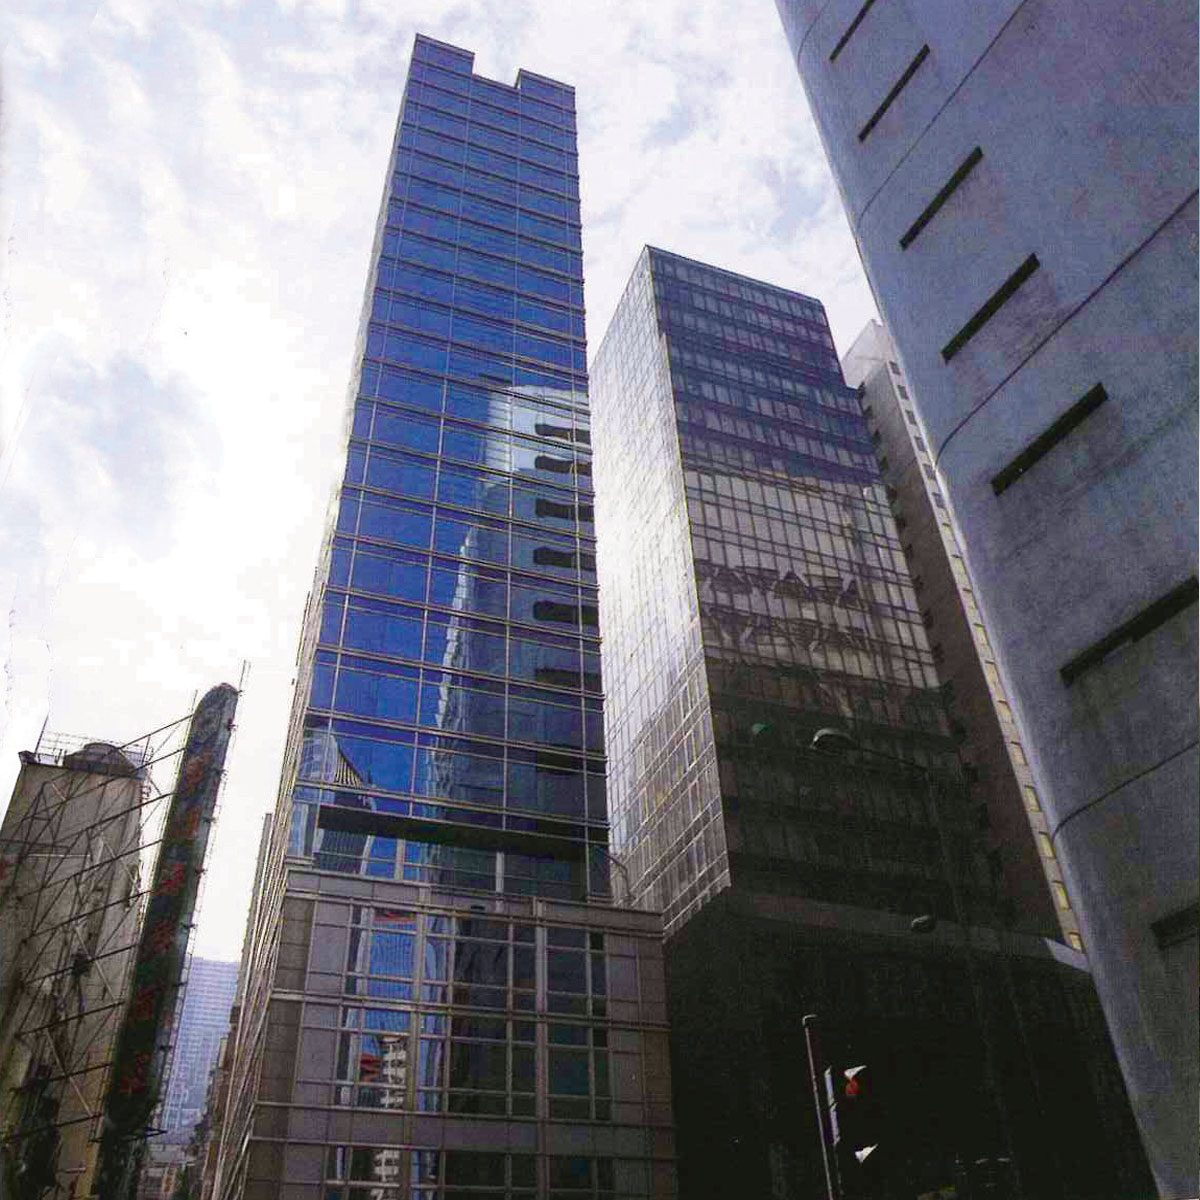 Proposed Commercial Building at 336-338 Queen's Road, Central, Hong Kong